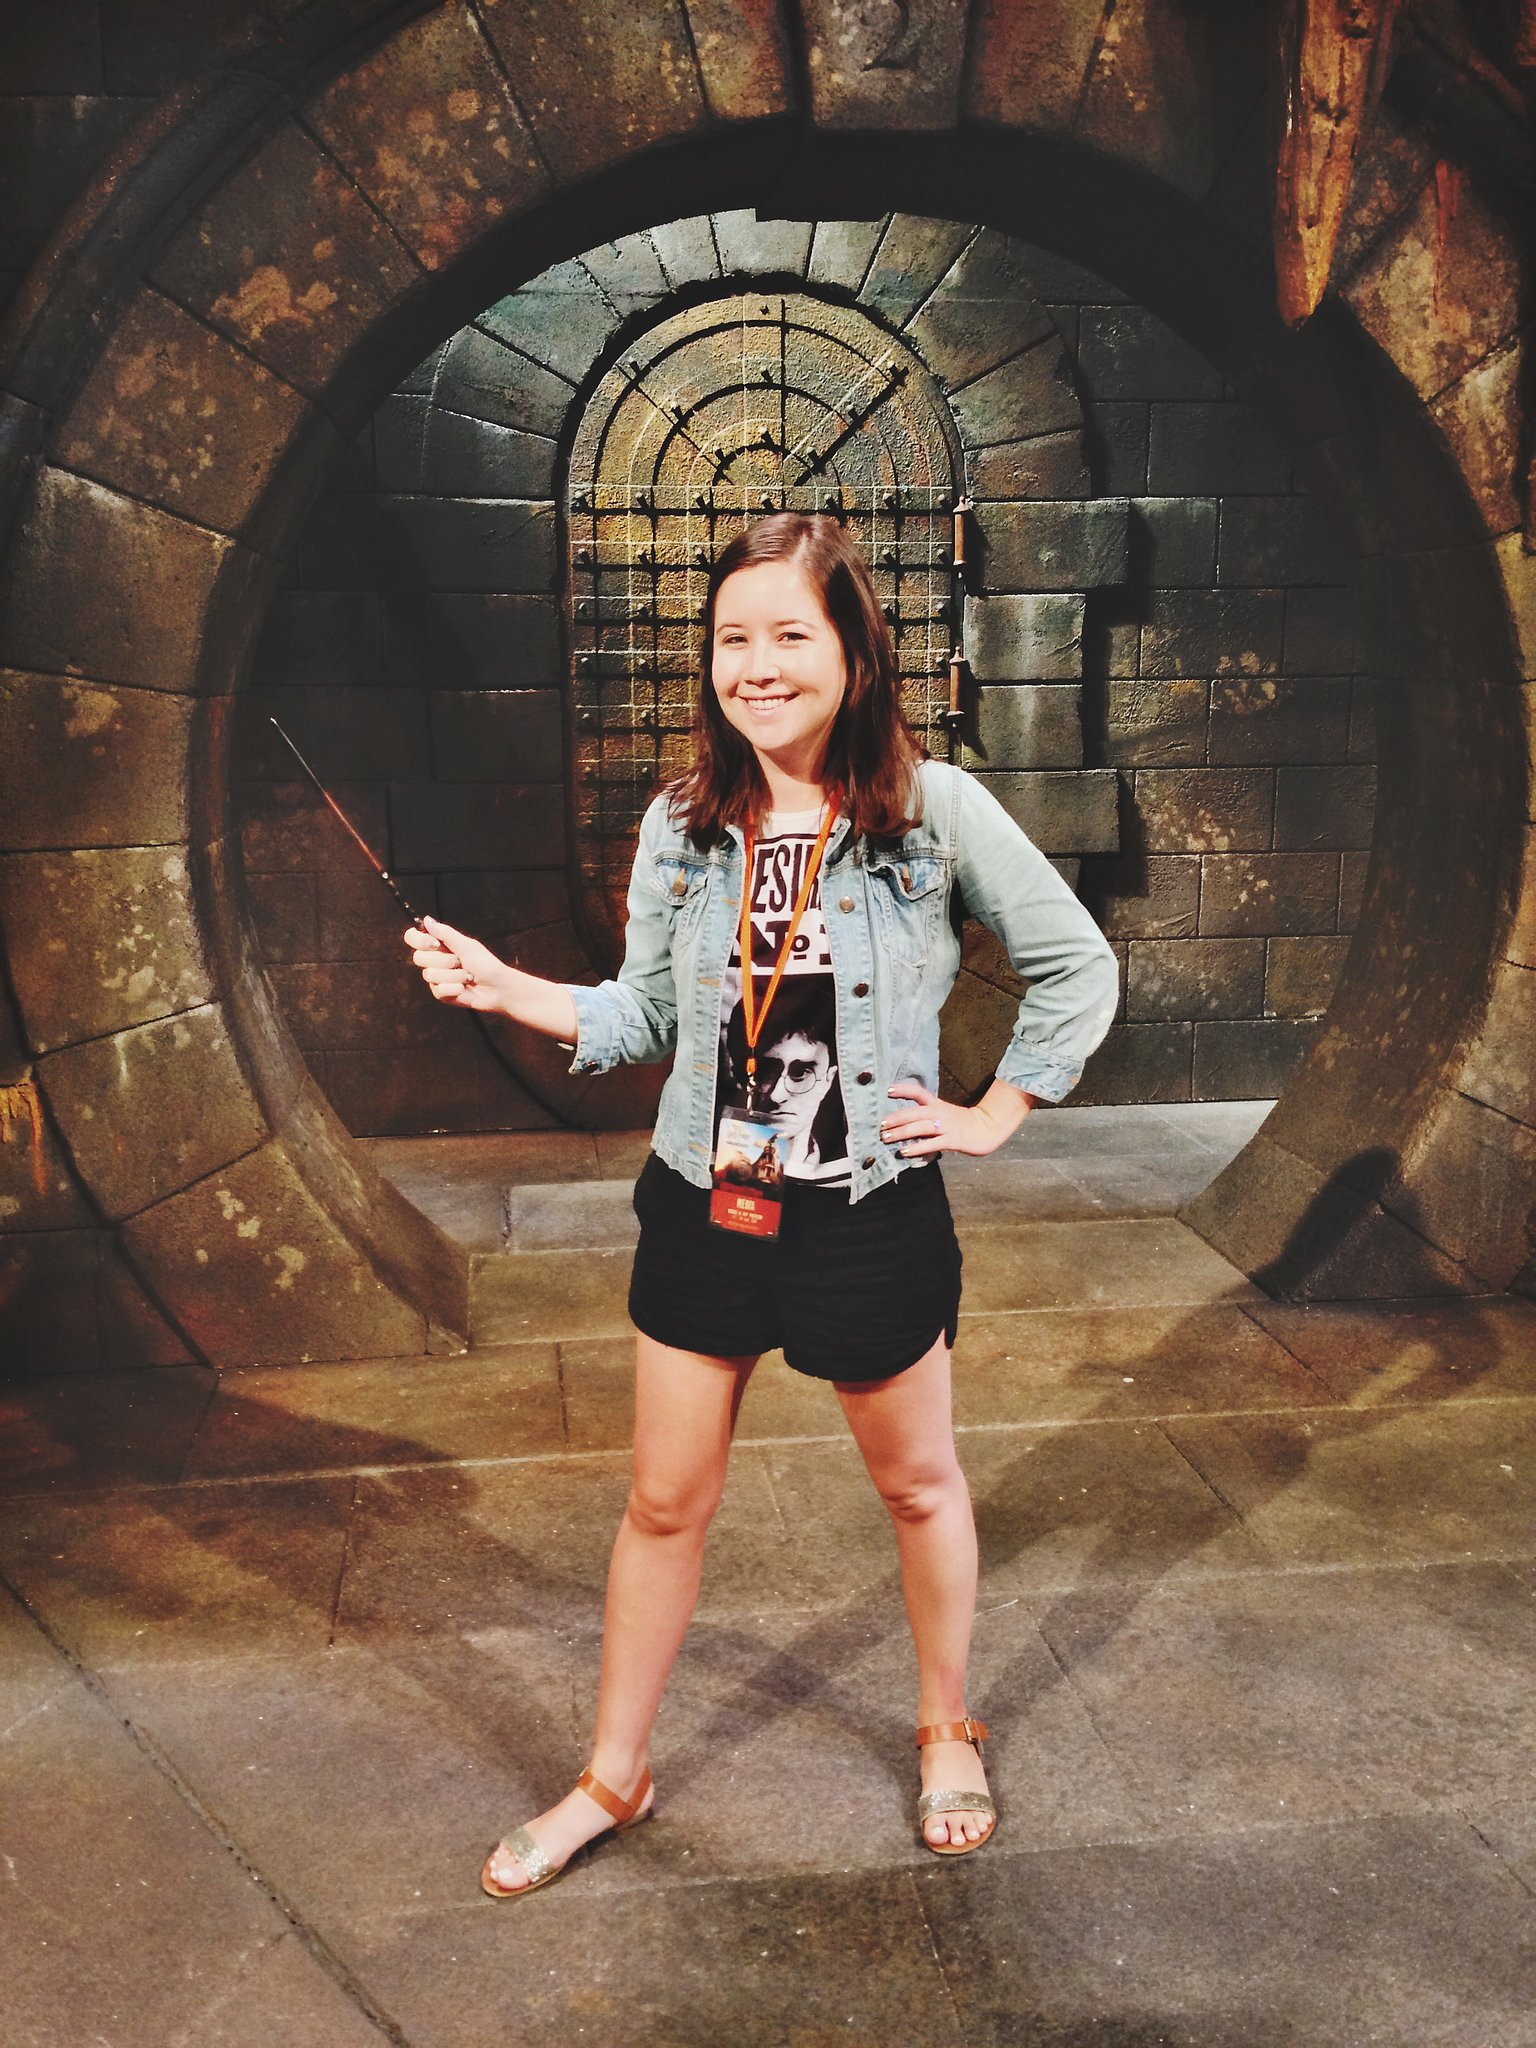 I had to pose with my wand in the Gringotts interview set.